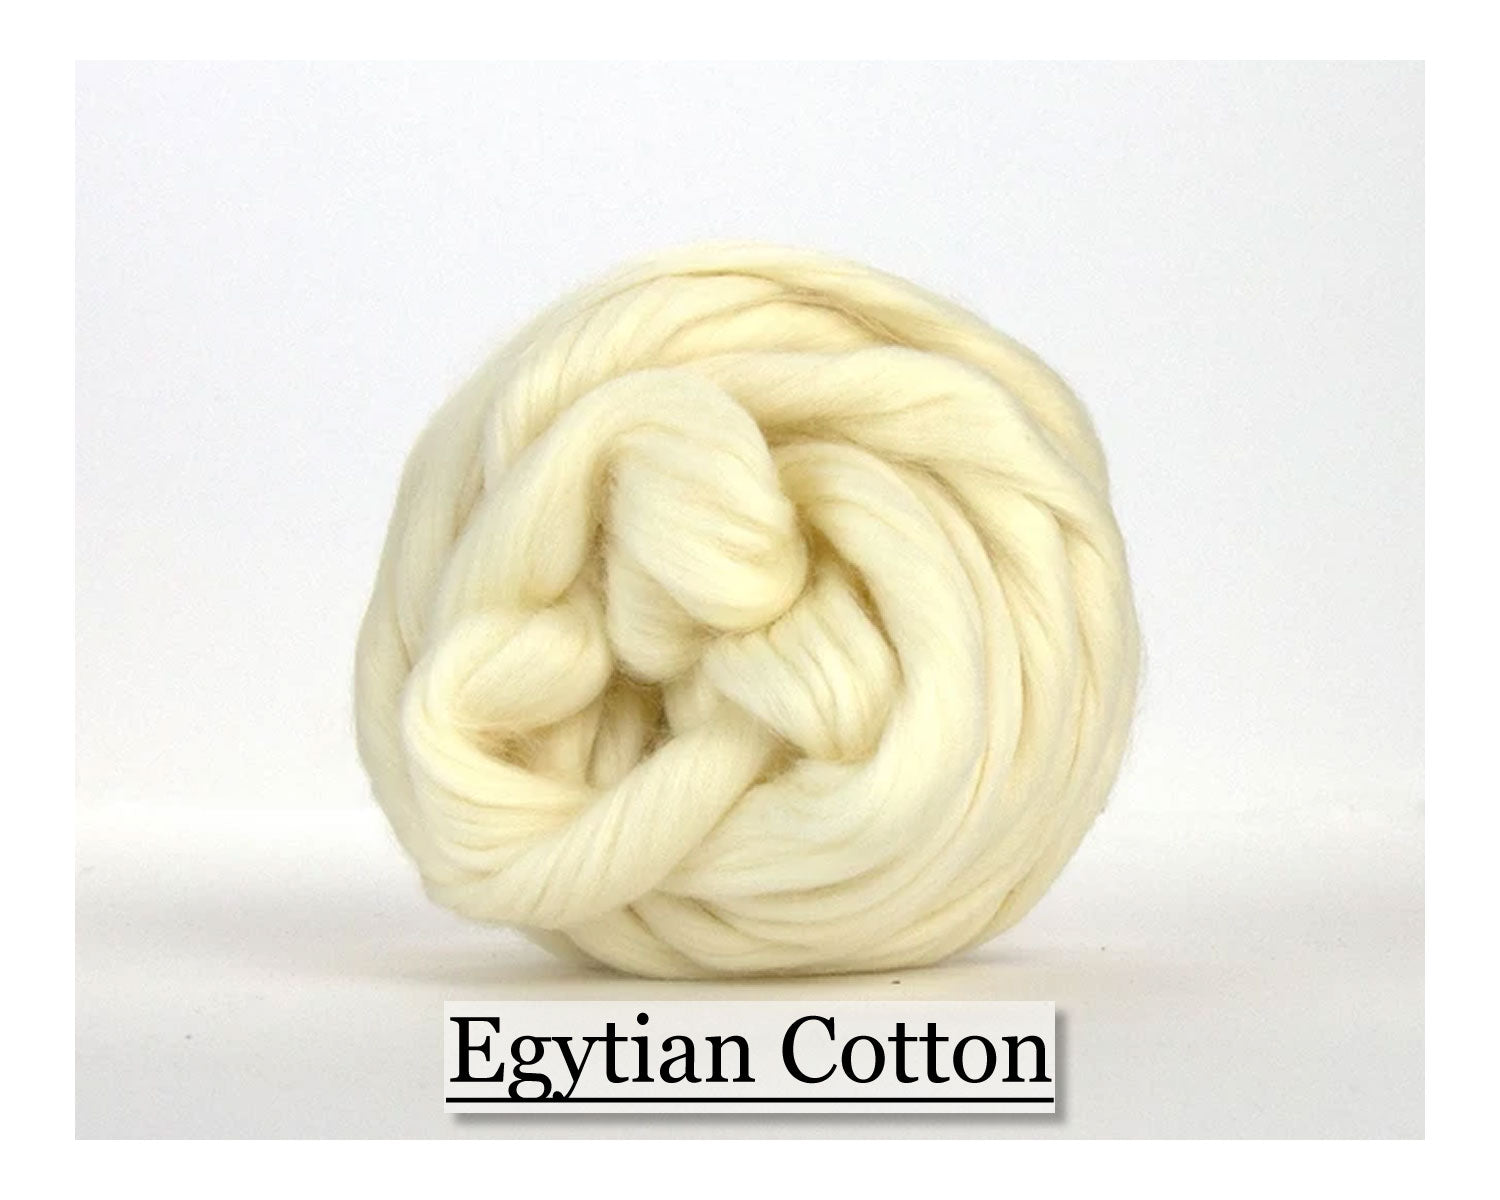 White Egyptian Cotton Top - 1, 2 or 4 oz